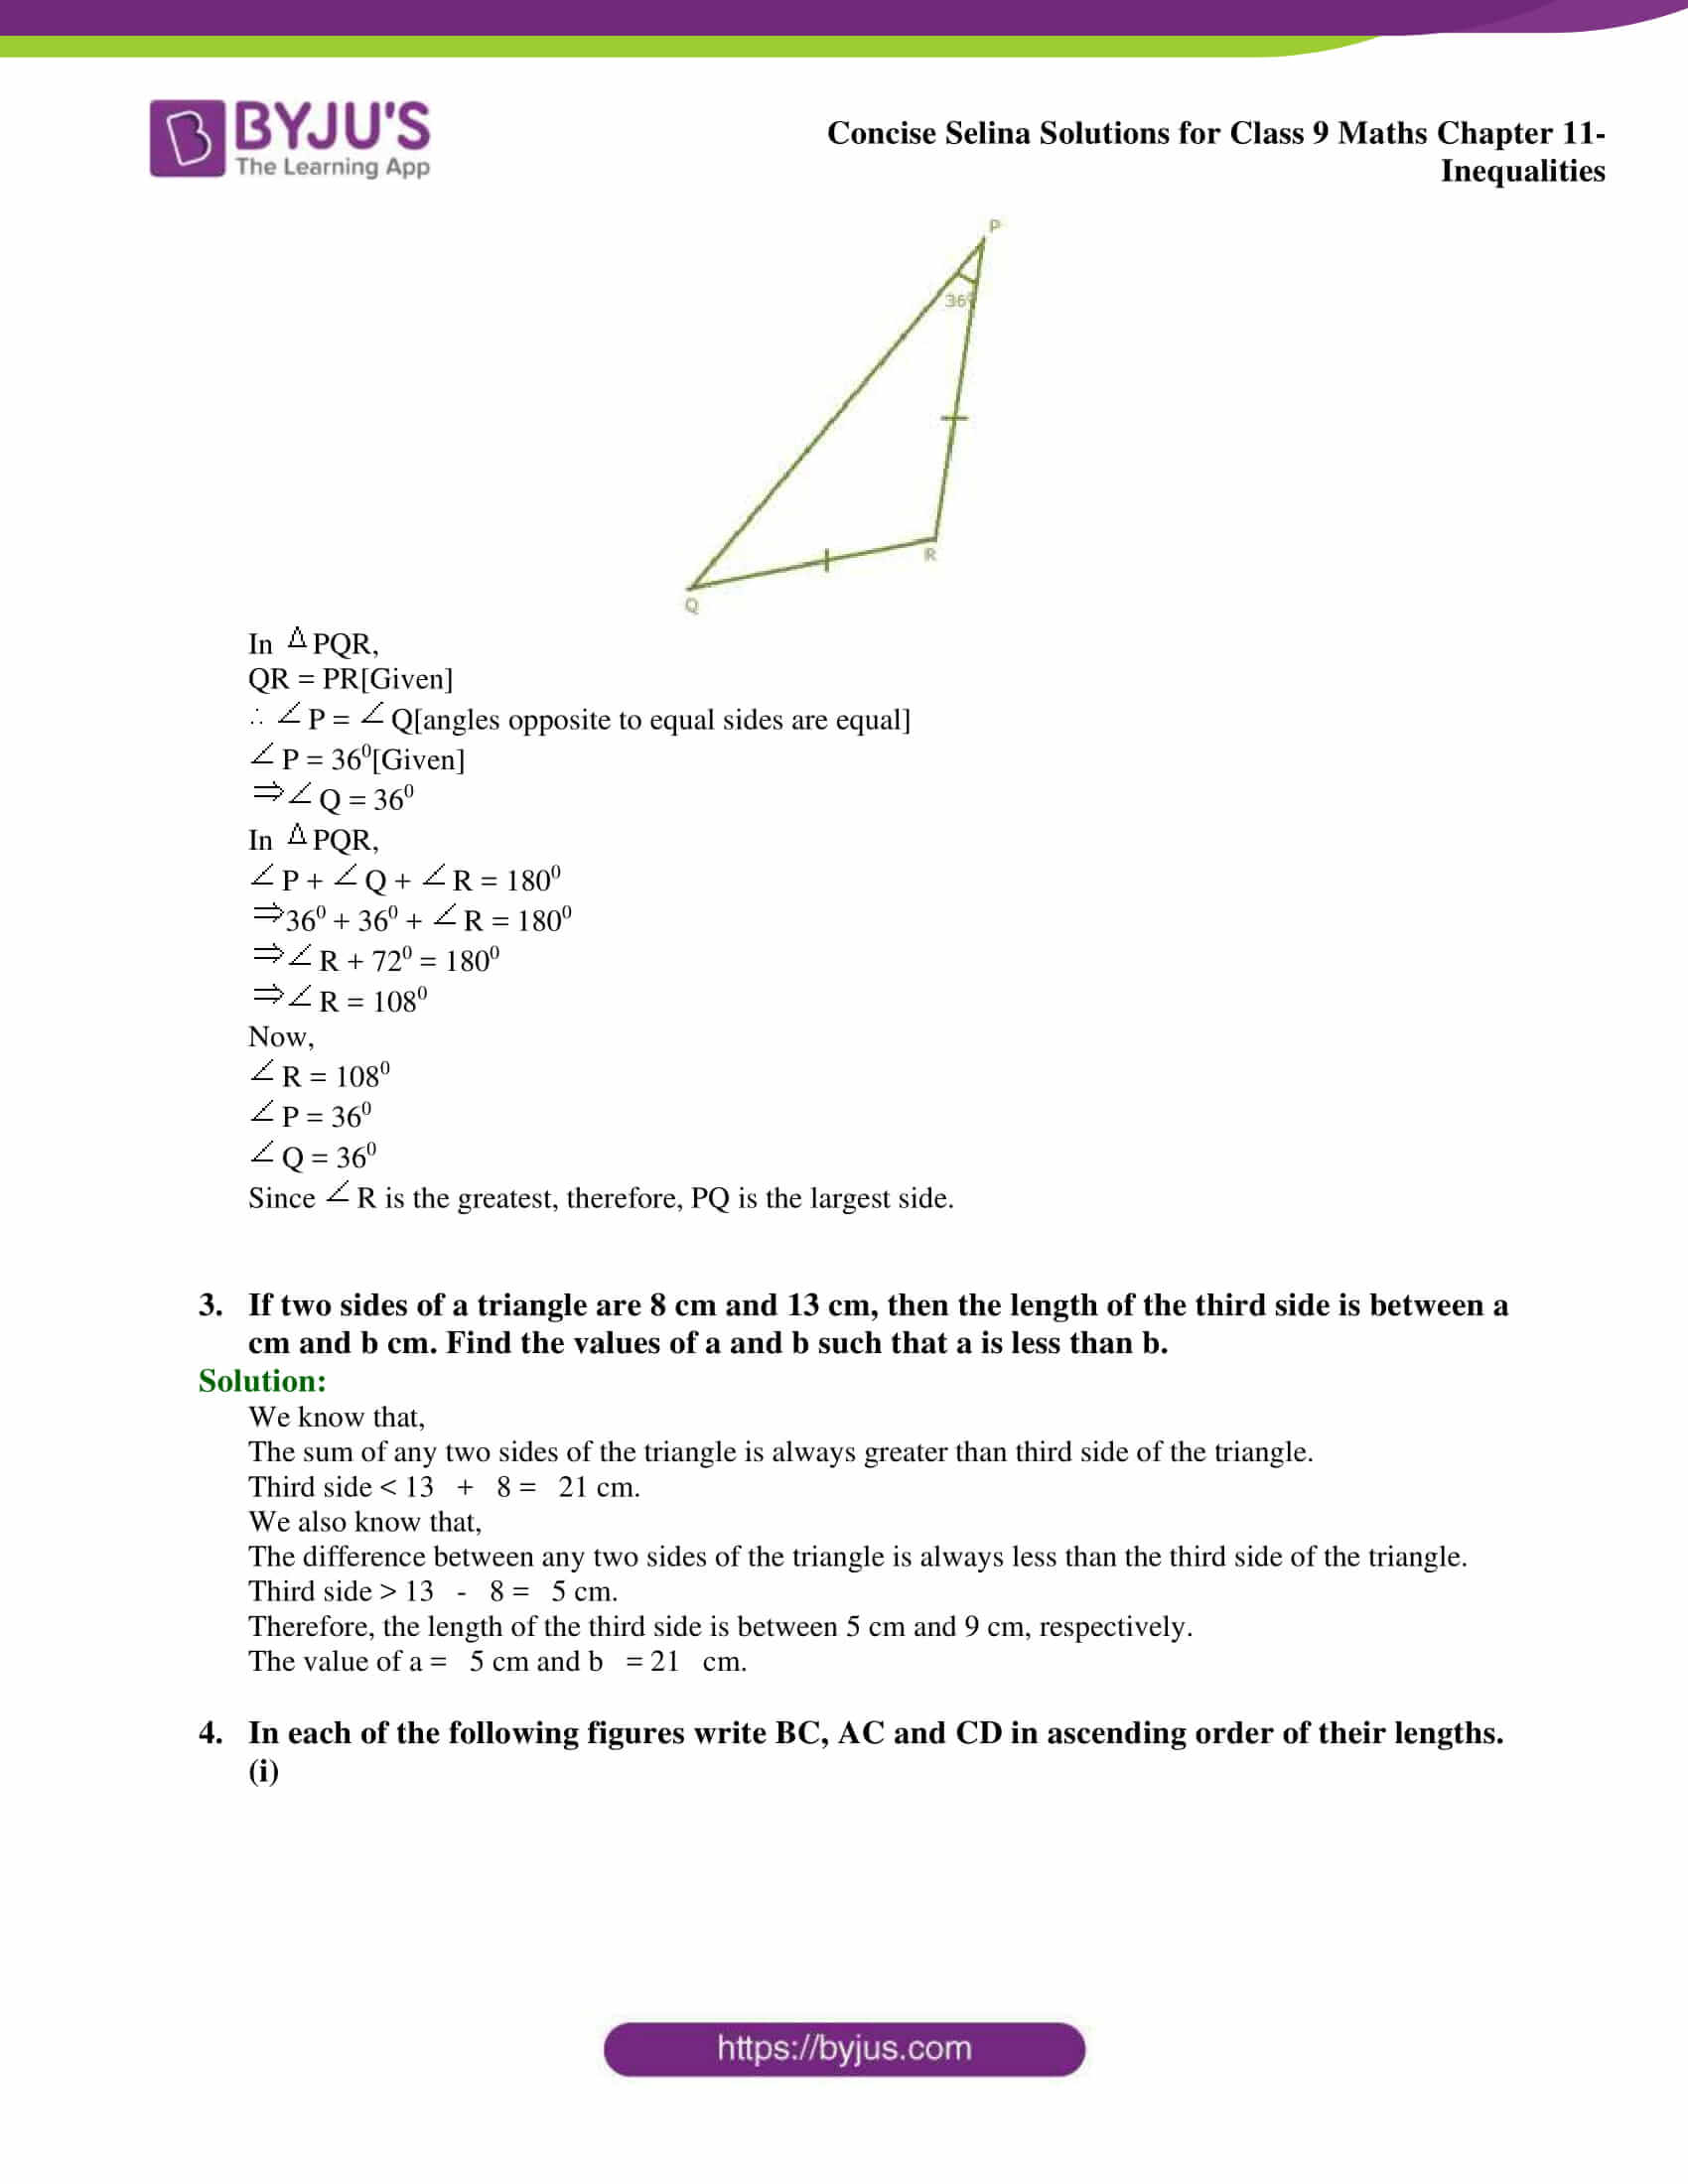 selina Solutions for Class 9 Maths Chapter 11 part 02